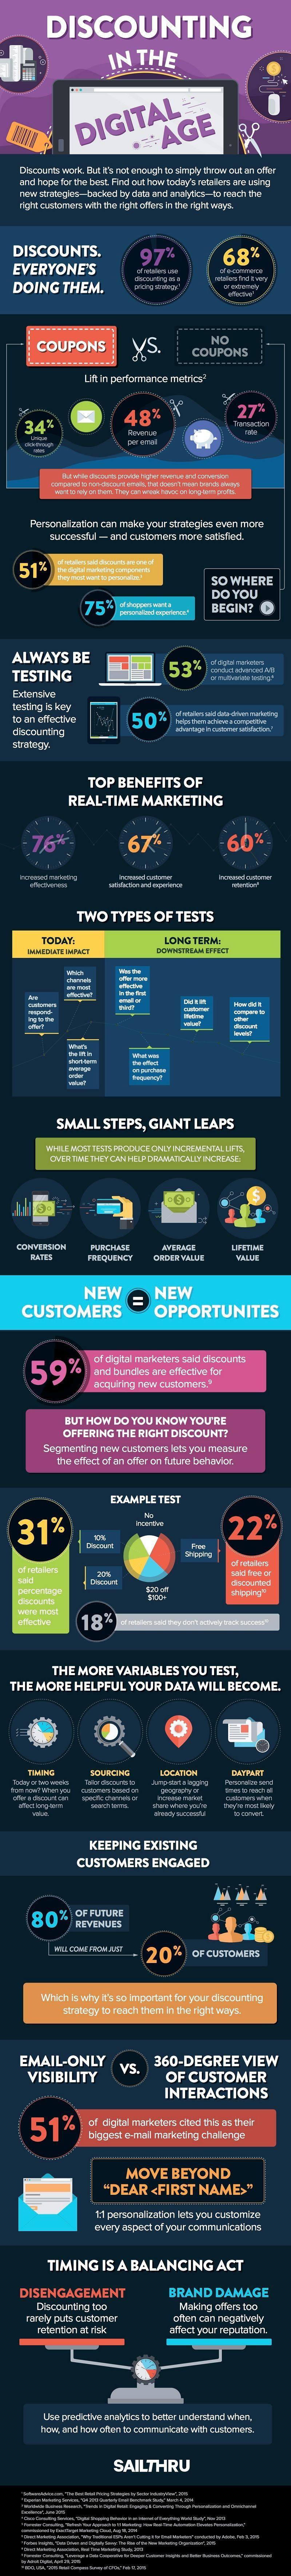 Discounting in the Digital Age #Infographic